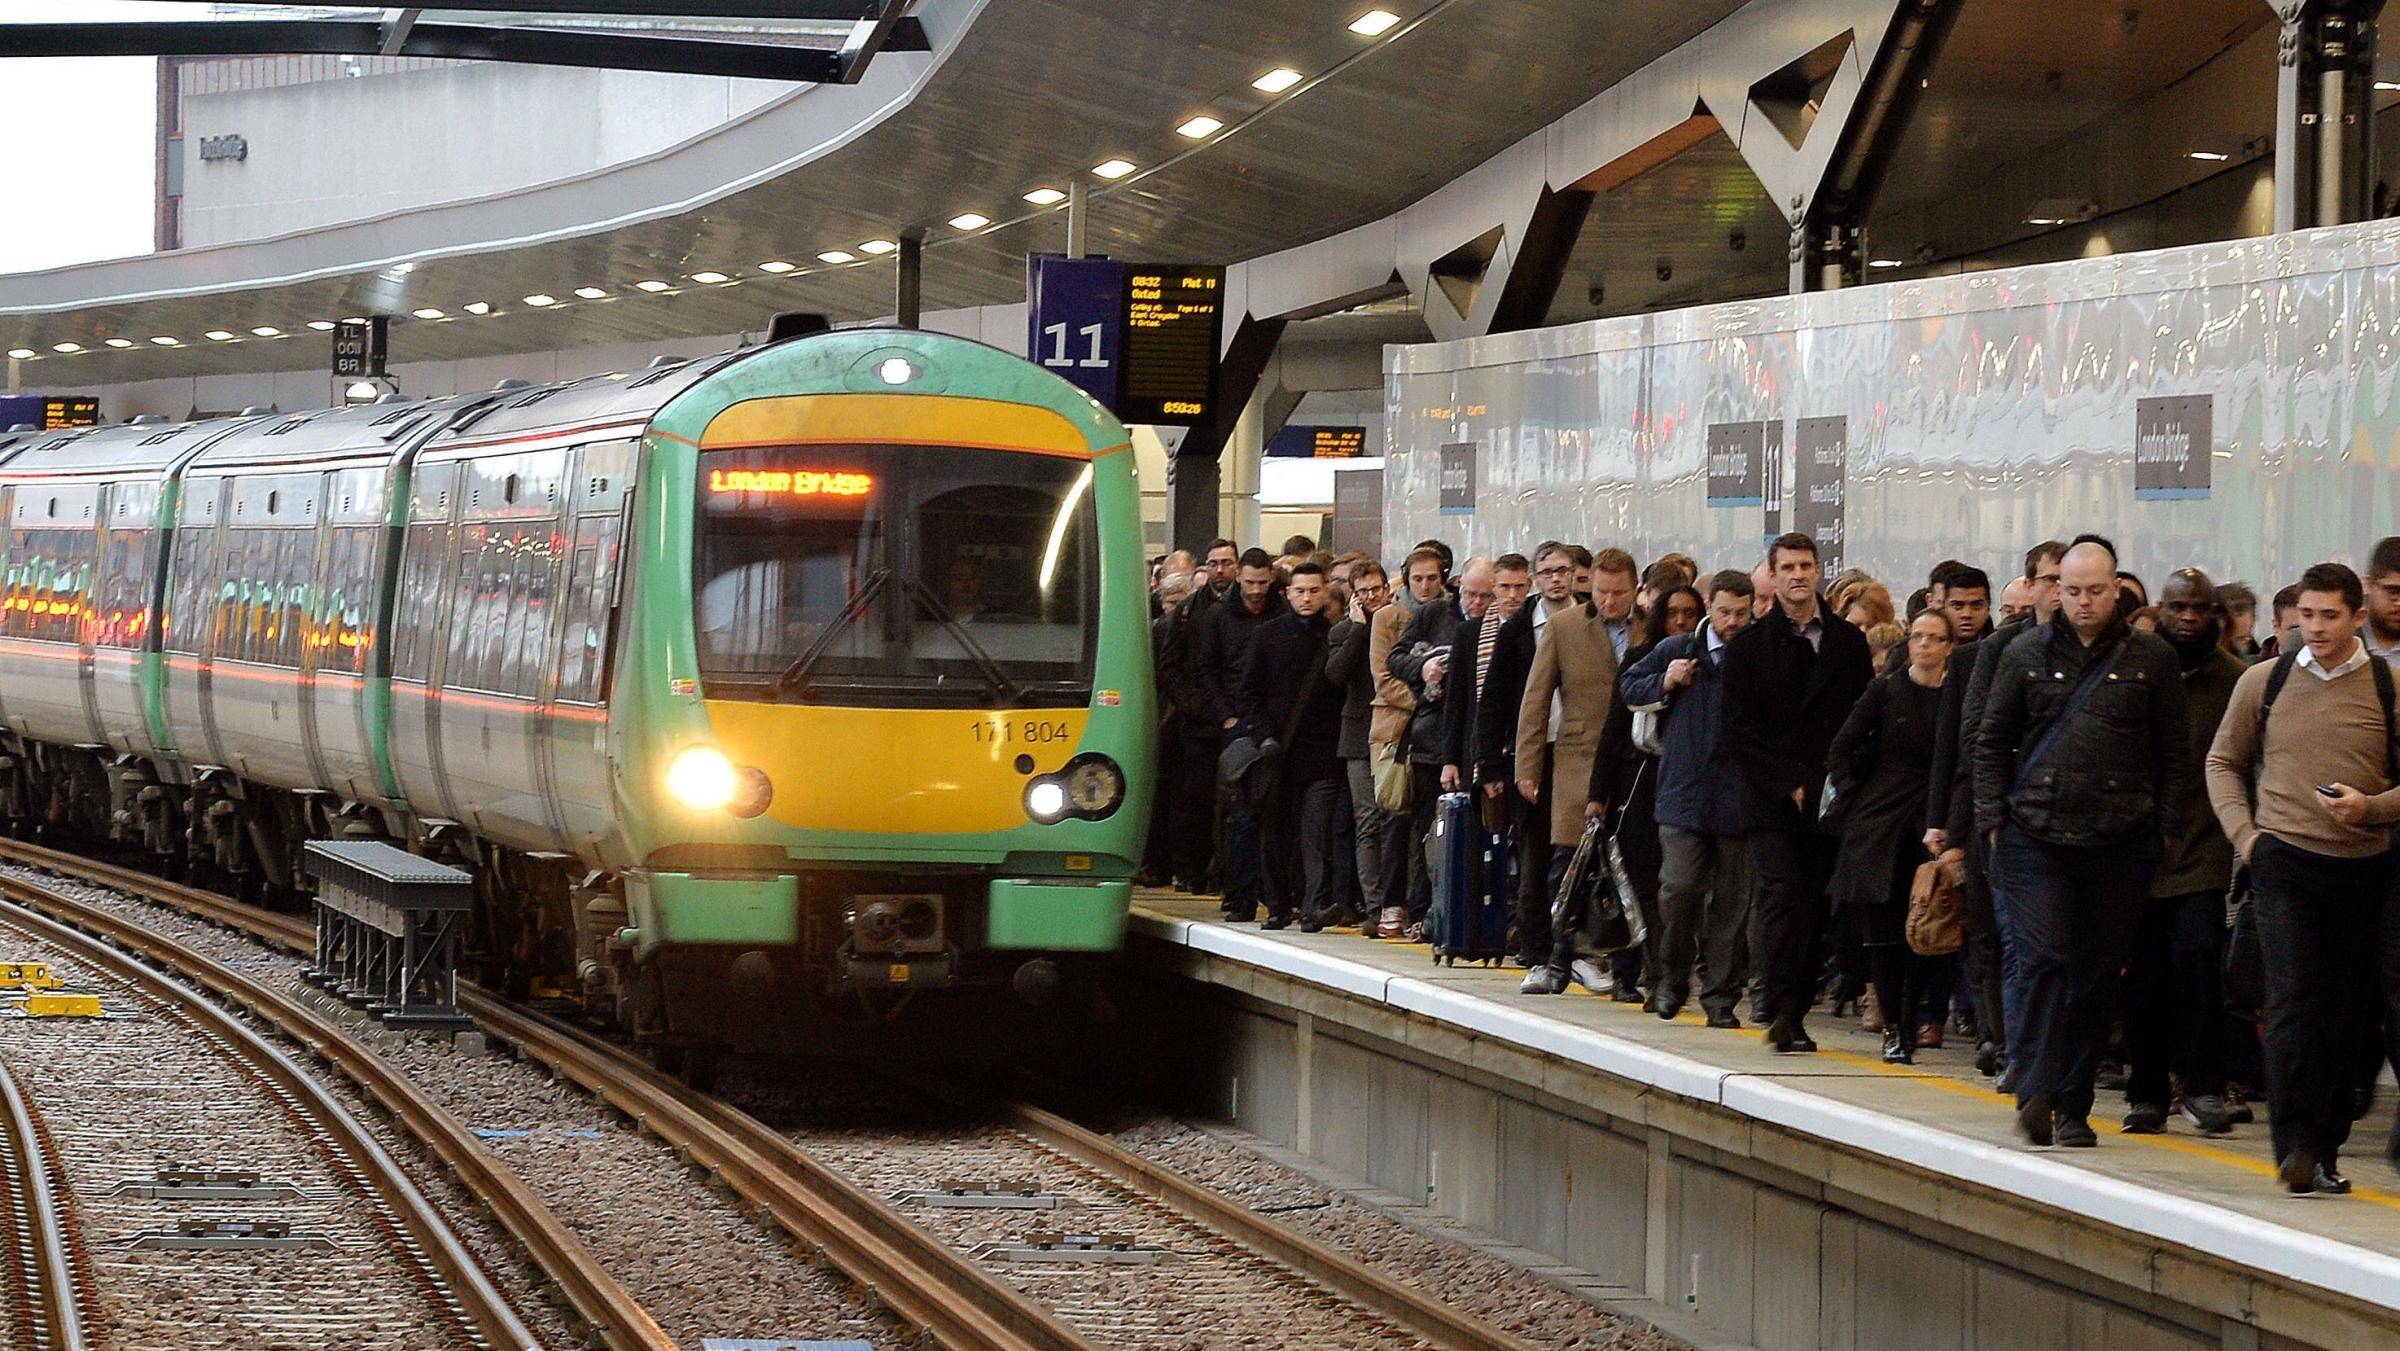 Commuters at London Bridge railway station as a Southern train pulls in